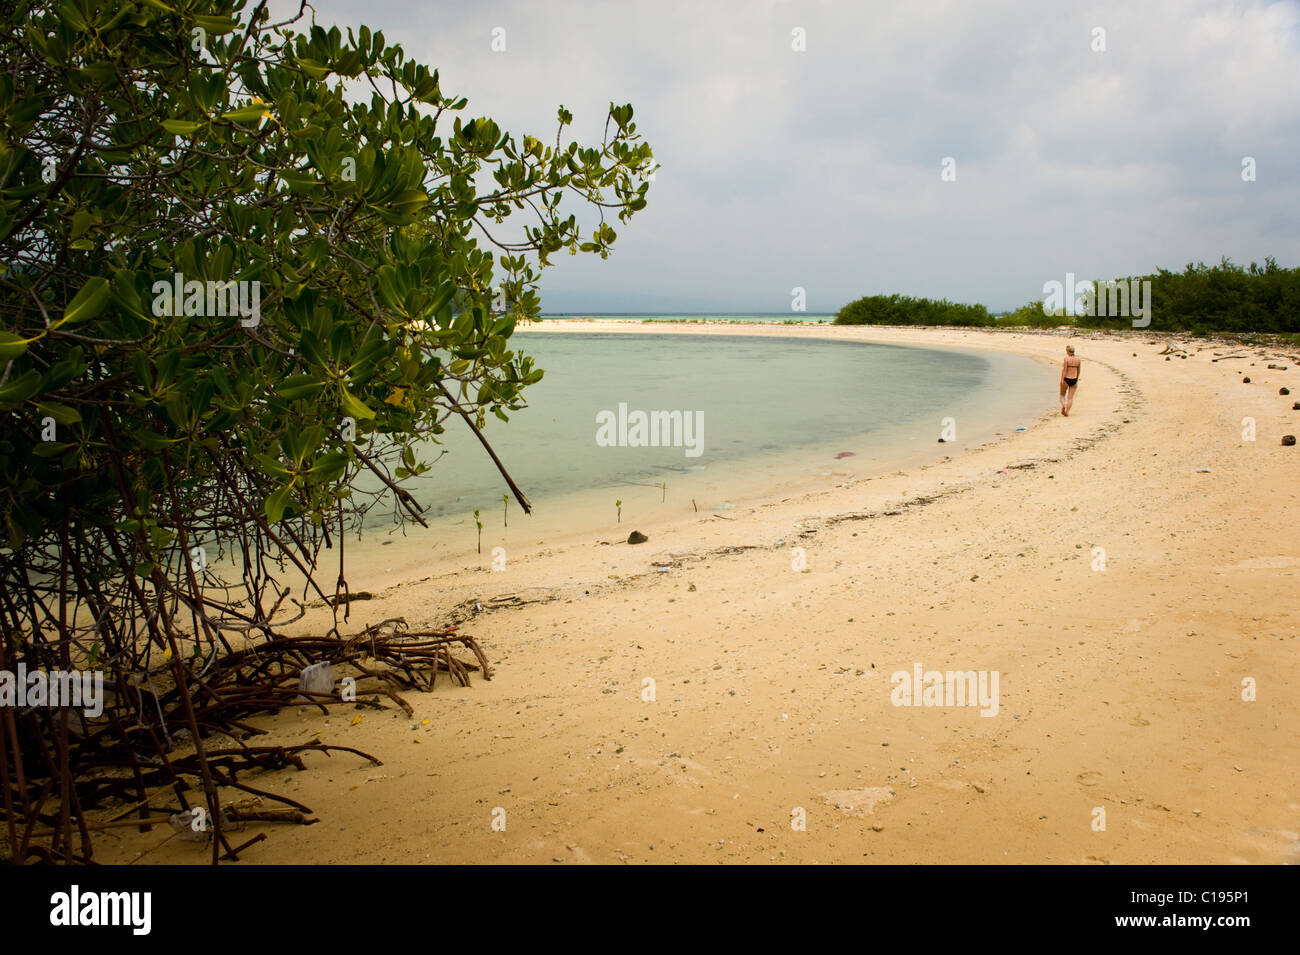 Menjangan Island is a dive destination located in the northwest corner of Bali, Indonesia with beautiful white sand - Stock Image